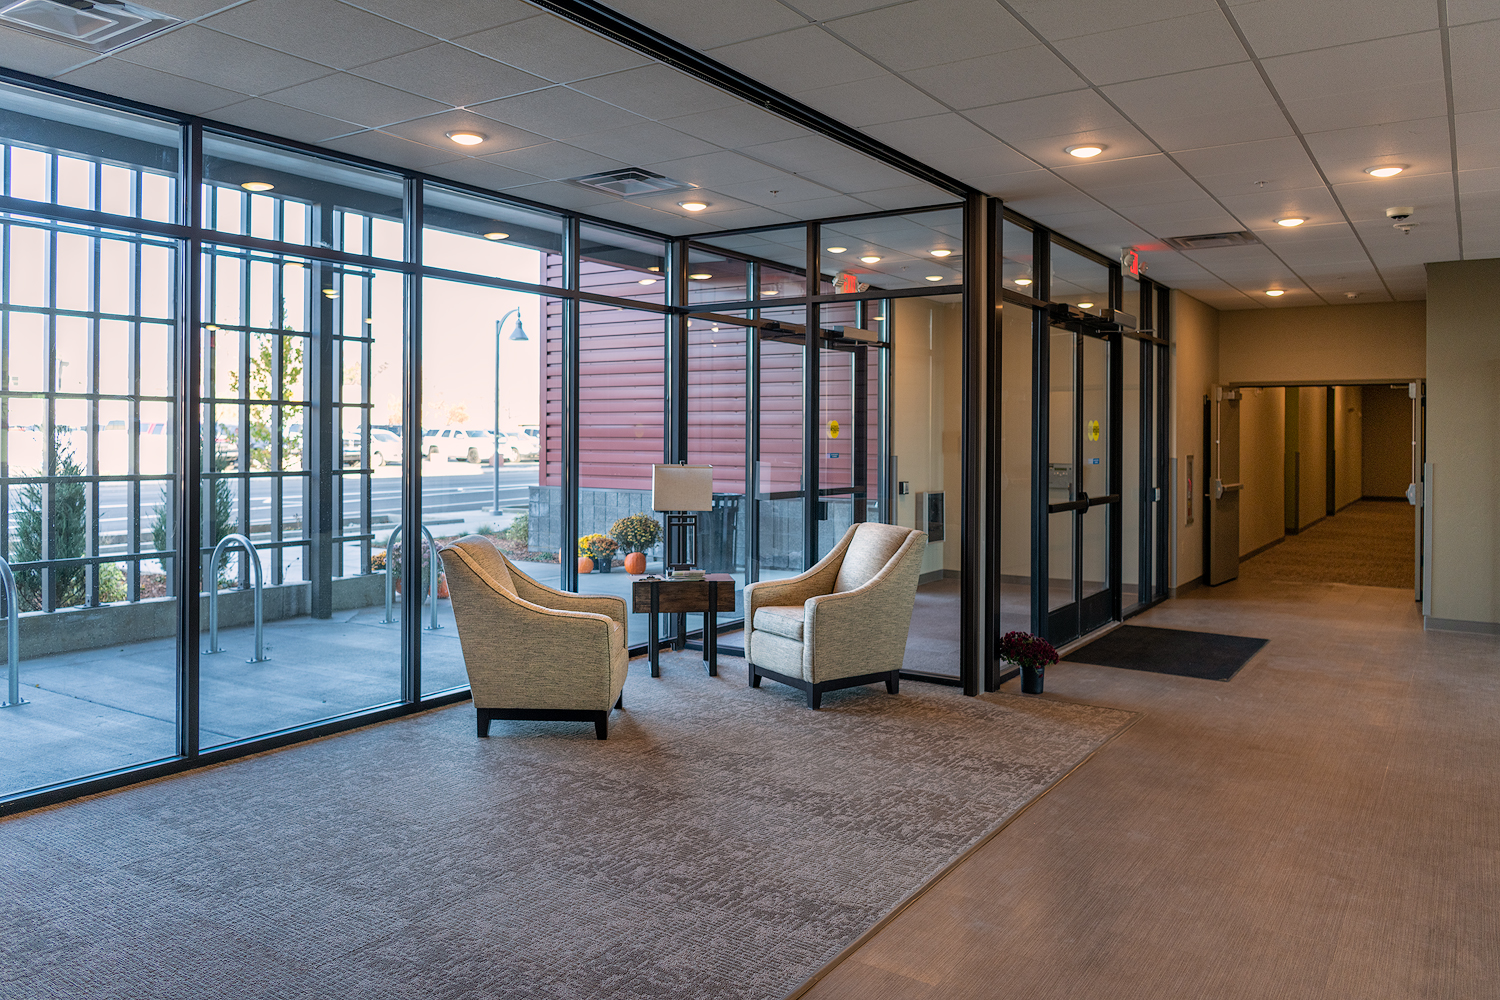 Photos | Adare Apartments | Affordable Housing in Boise, Idaho